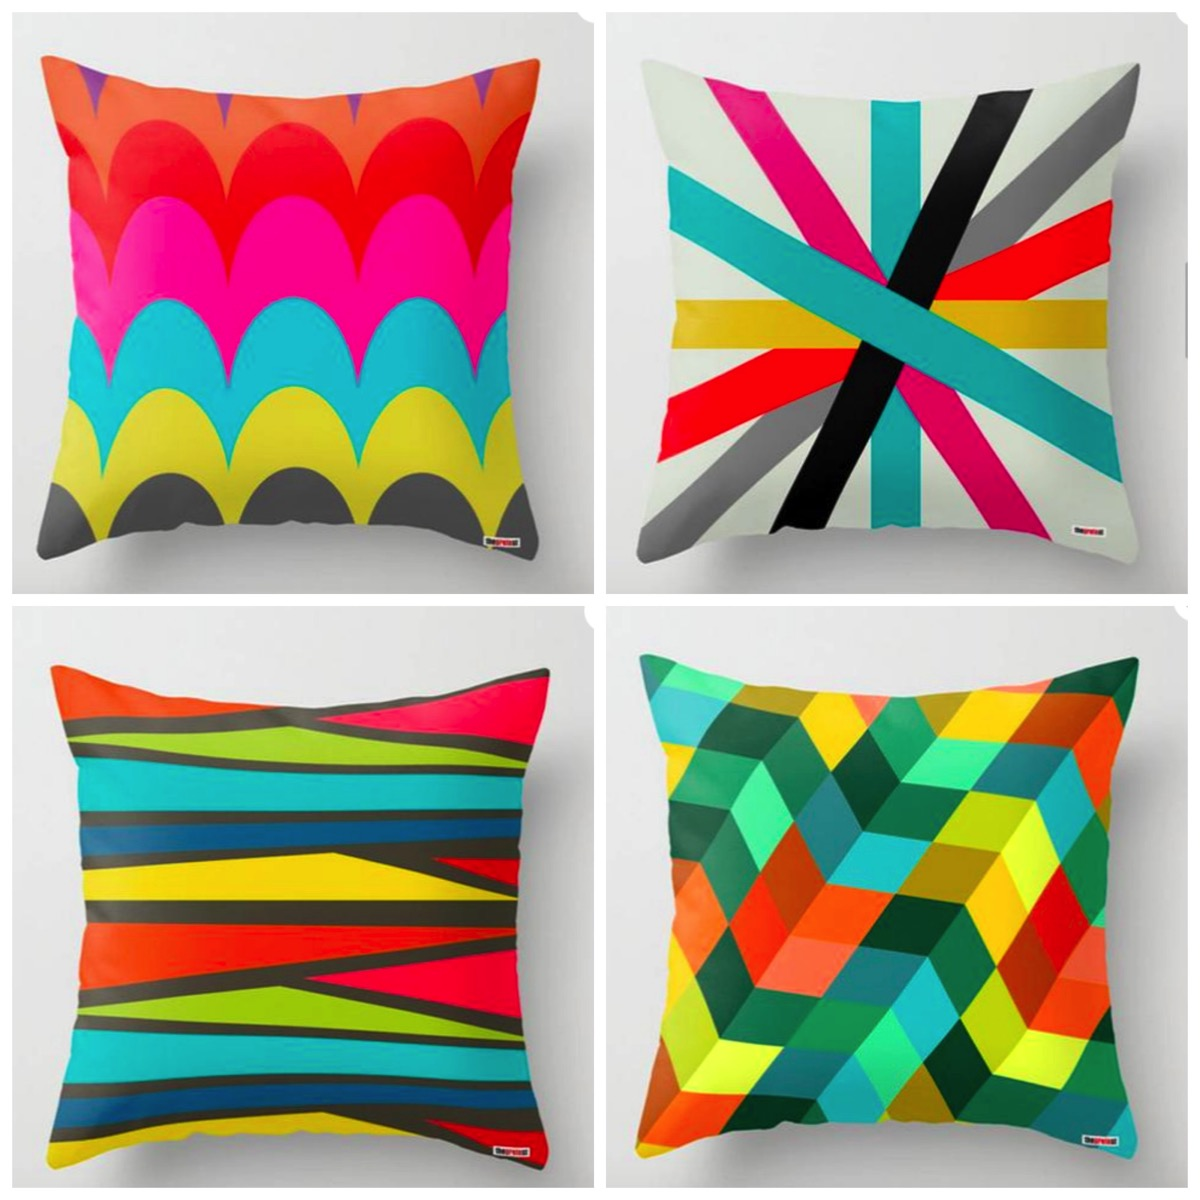 The greatest etsy decorative pillows most colorful and unique decorative pillows dig and hang